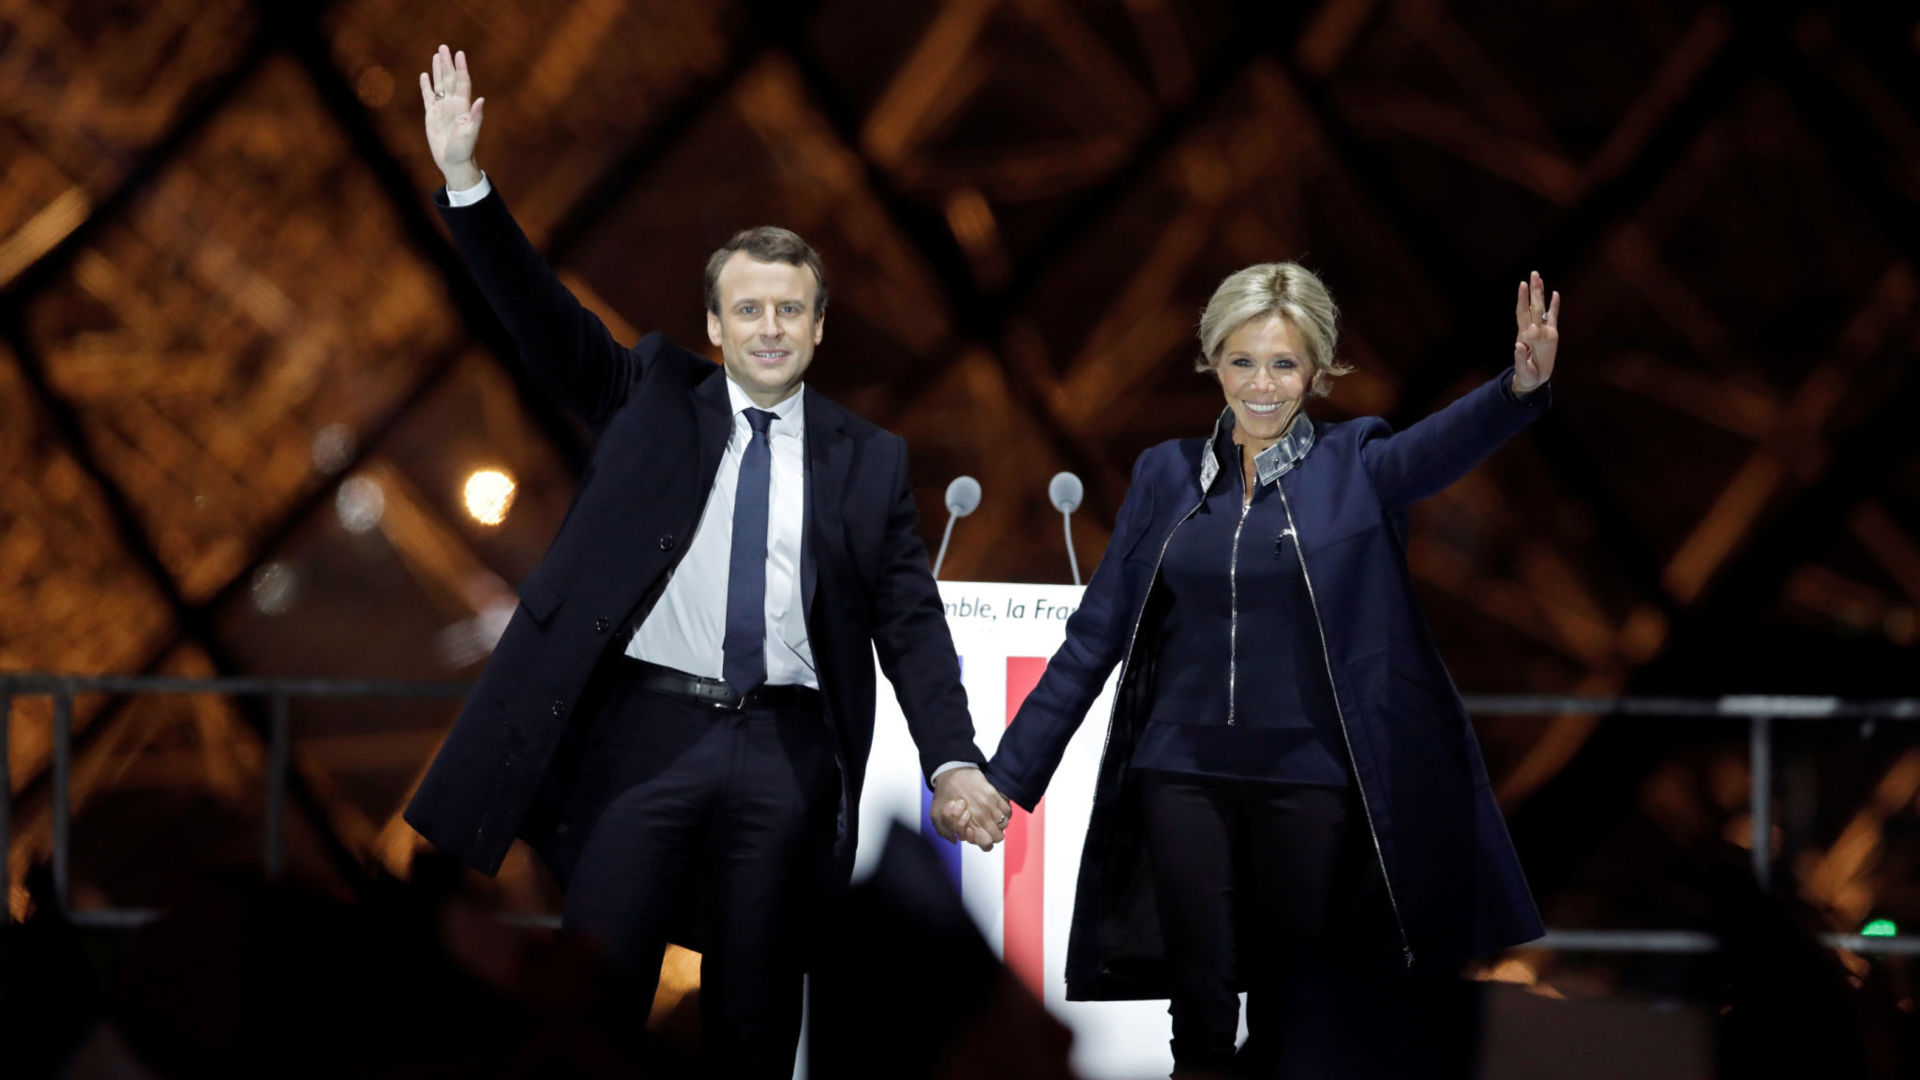 French President elect Emmanuel Macron and his wife Brigitte Trogneux celebrate on the stage at his victory rally near the Louvre in Paris, France May 7, 2017. REUTERS/Benoit Tessier - RTS15KRV